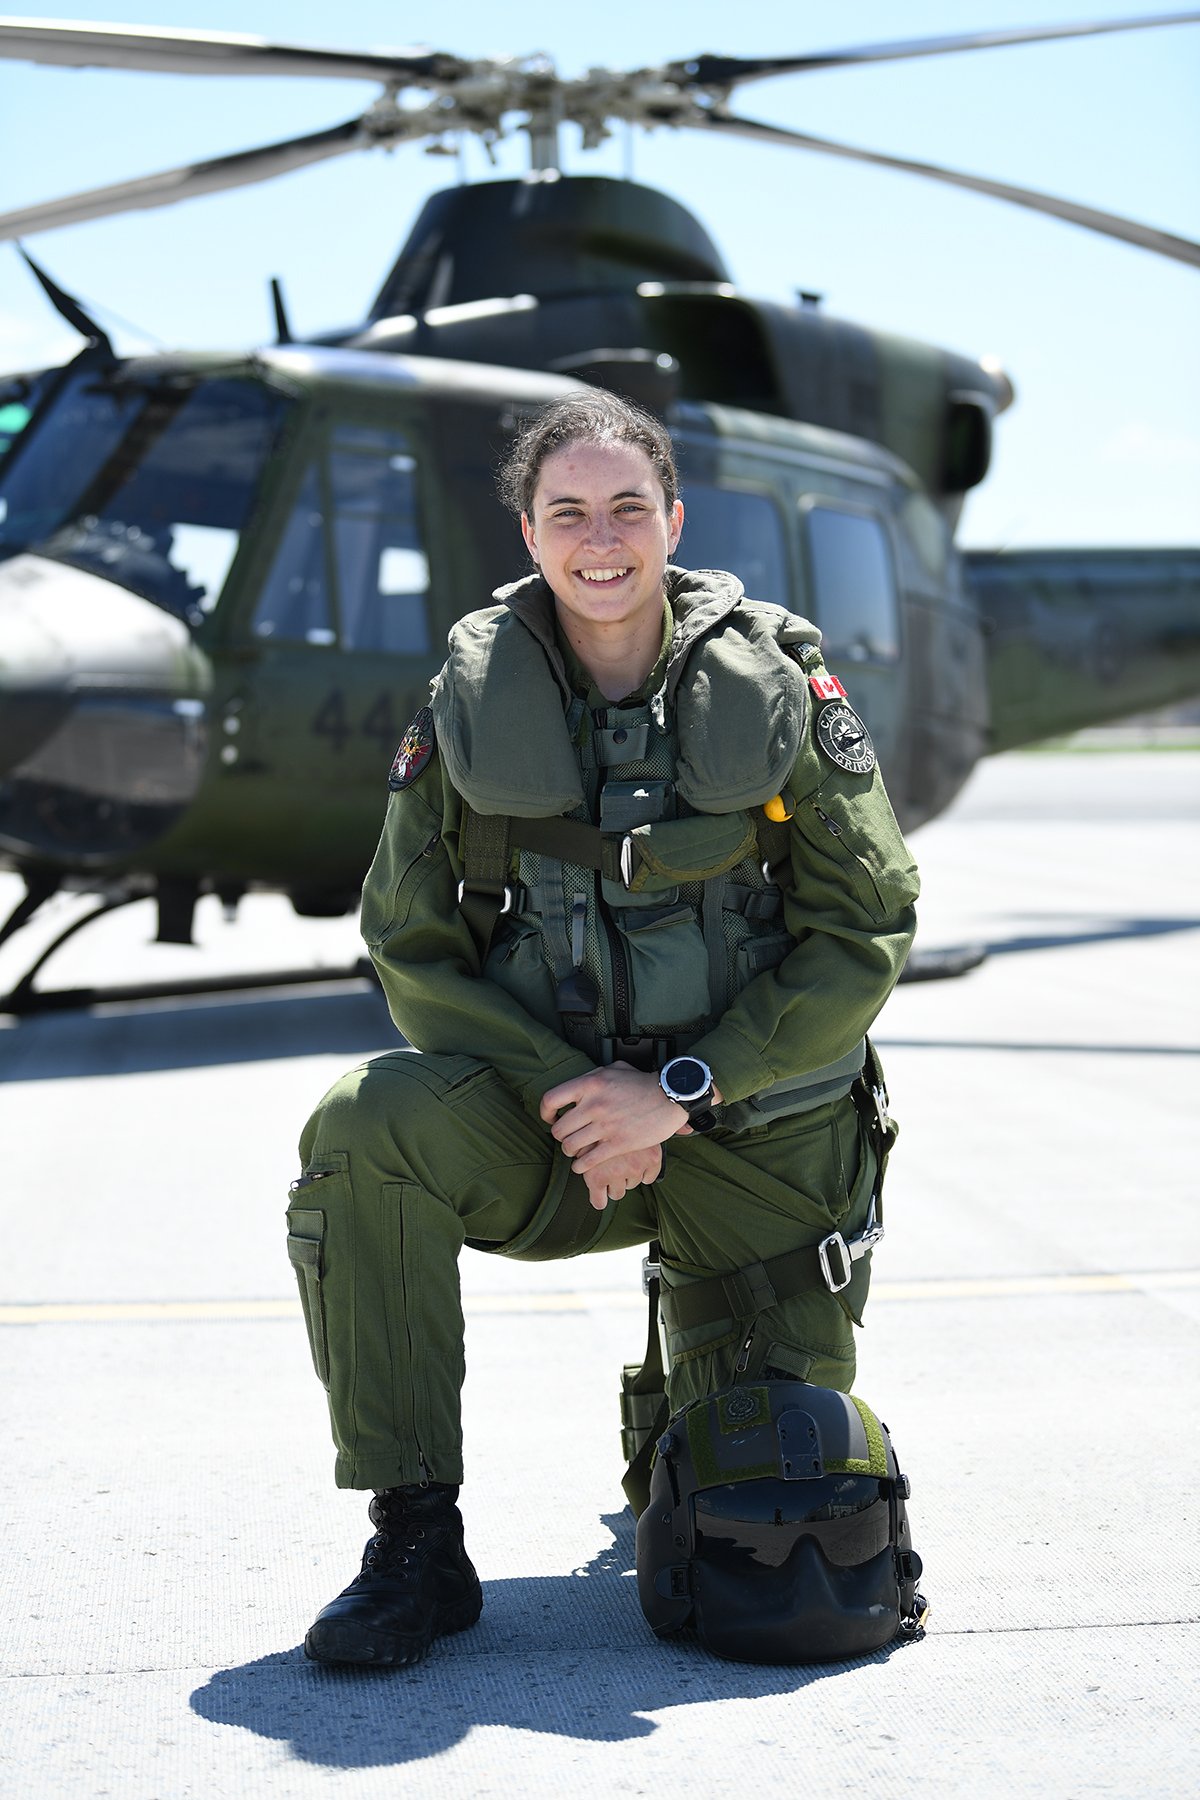 A smiling woman wearing a military flight suit bent on one knee on a runway. There is a military helicopter behind her.